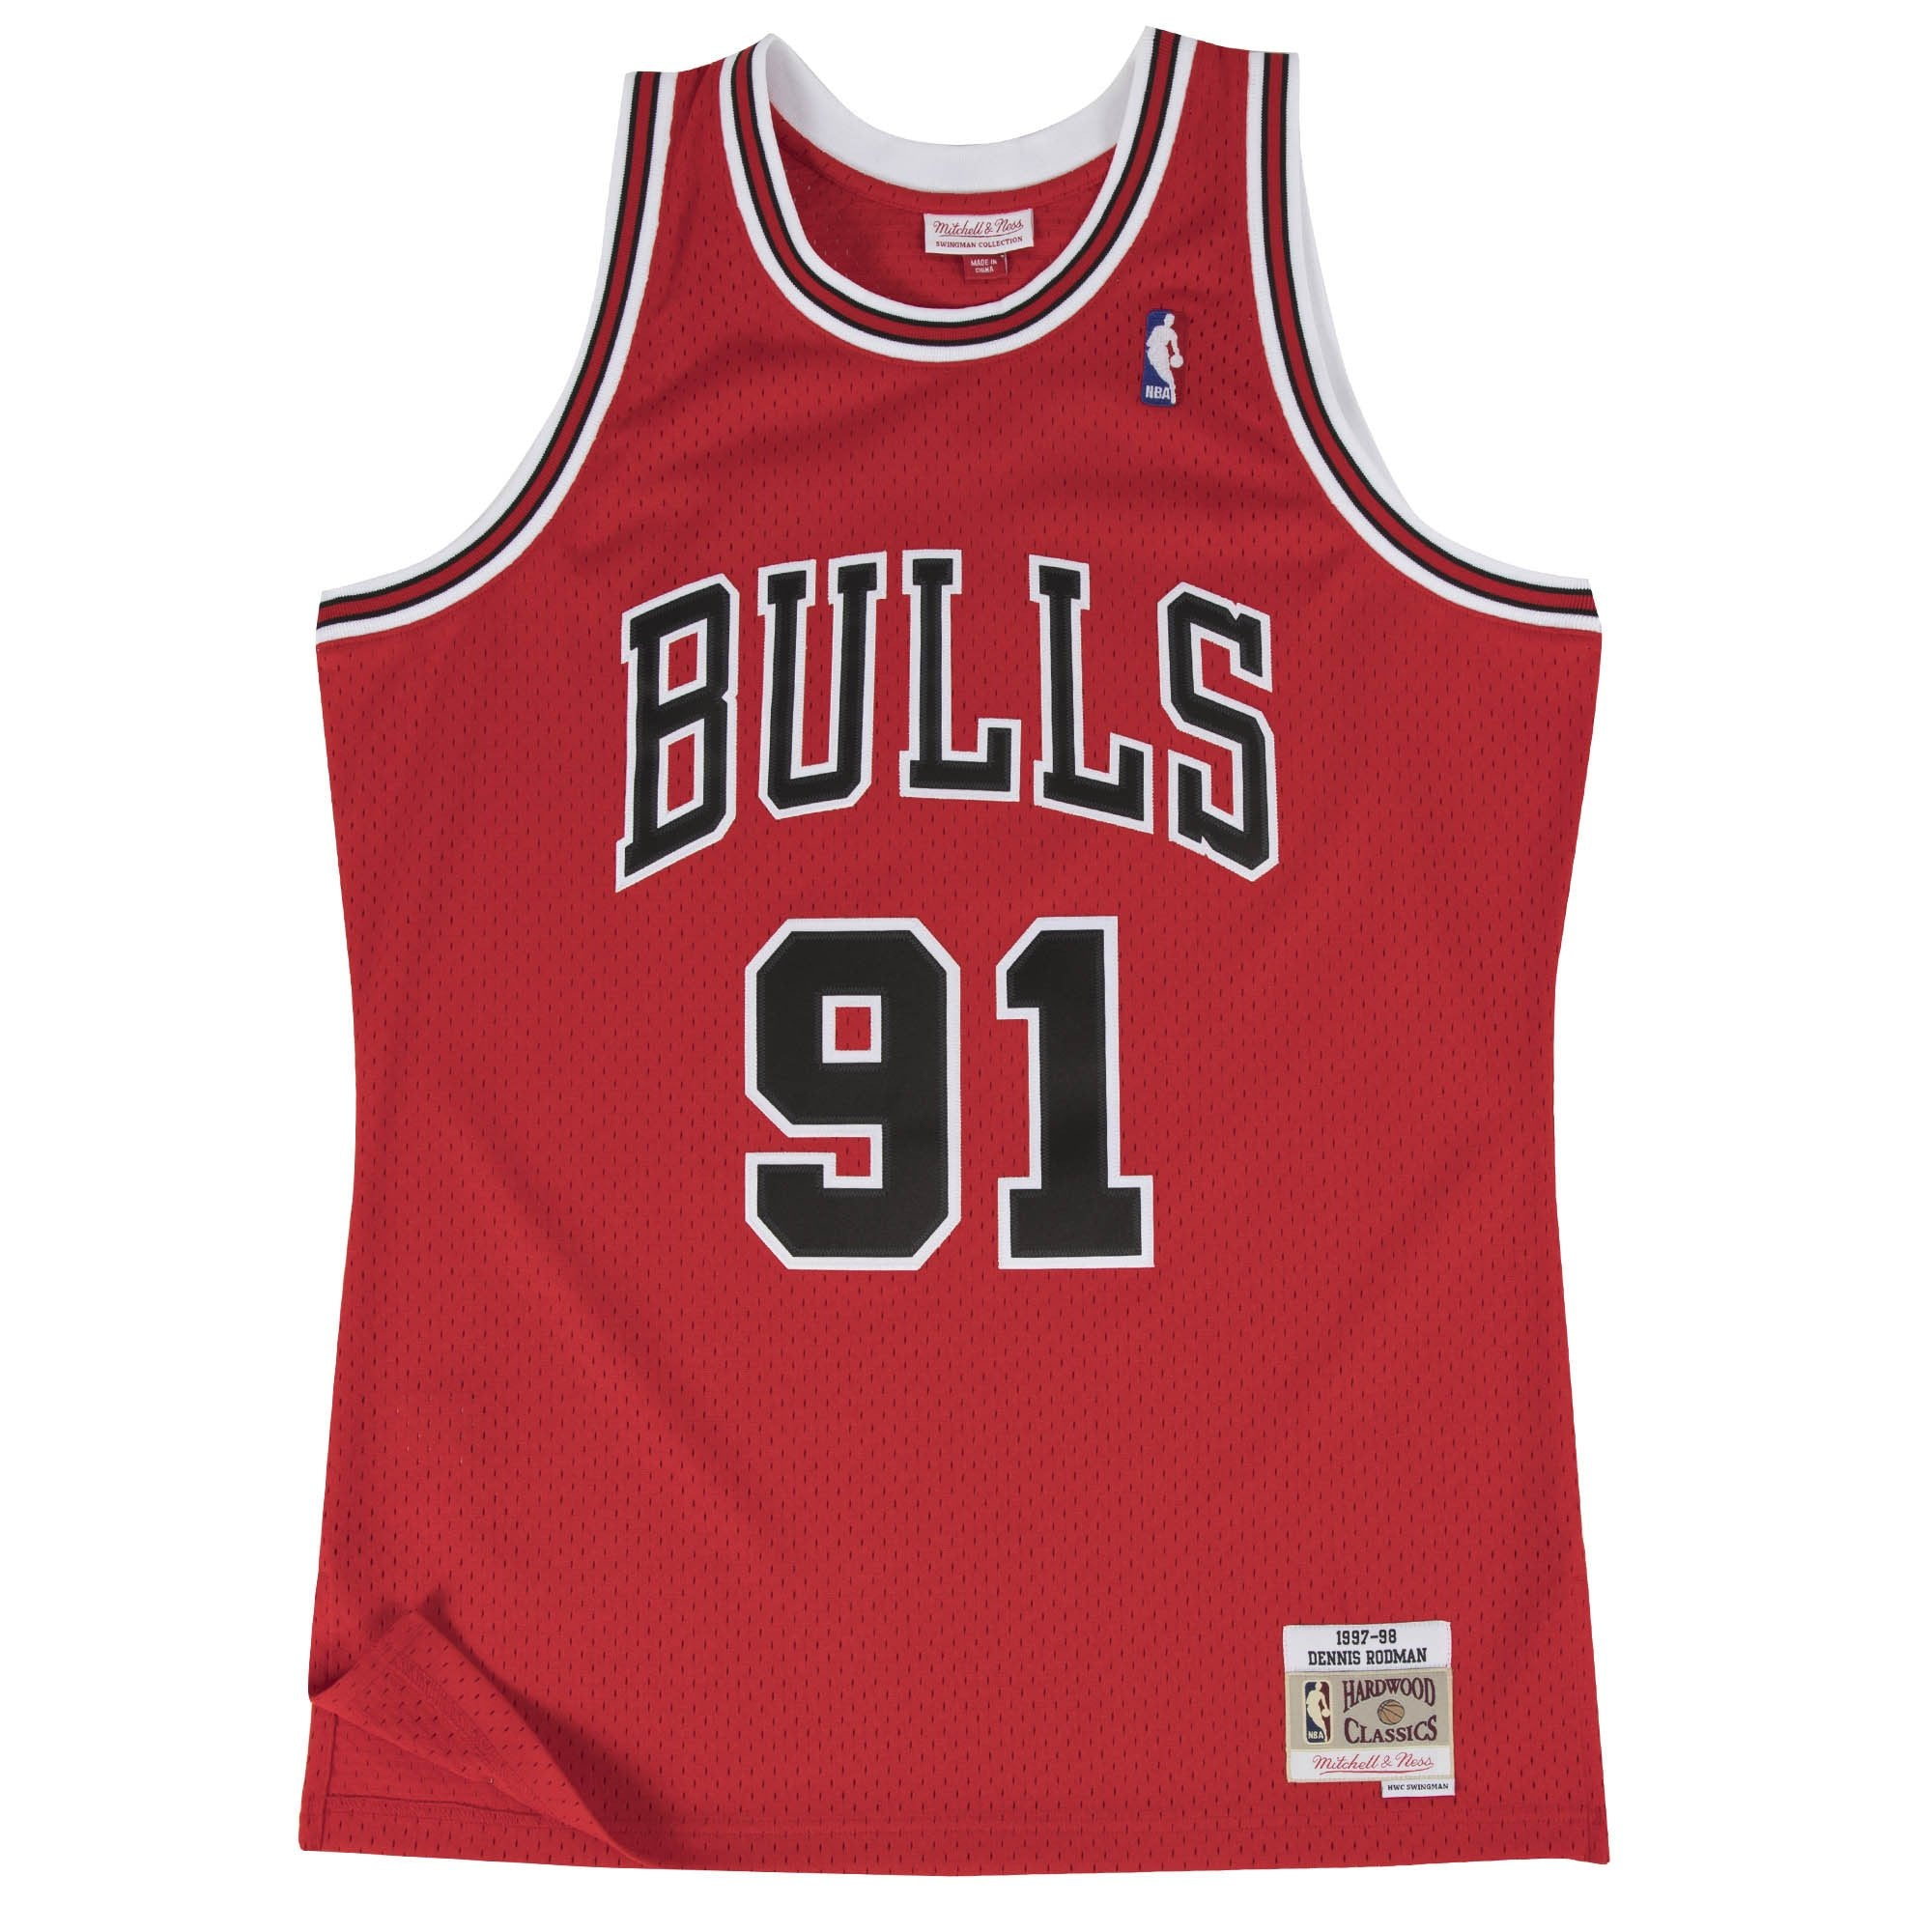 the best attitude dd17a c7197 czech mitchell and ness chicago bulls jersey 64619 6be08